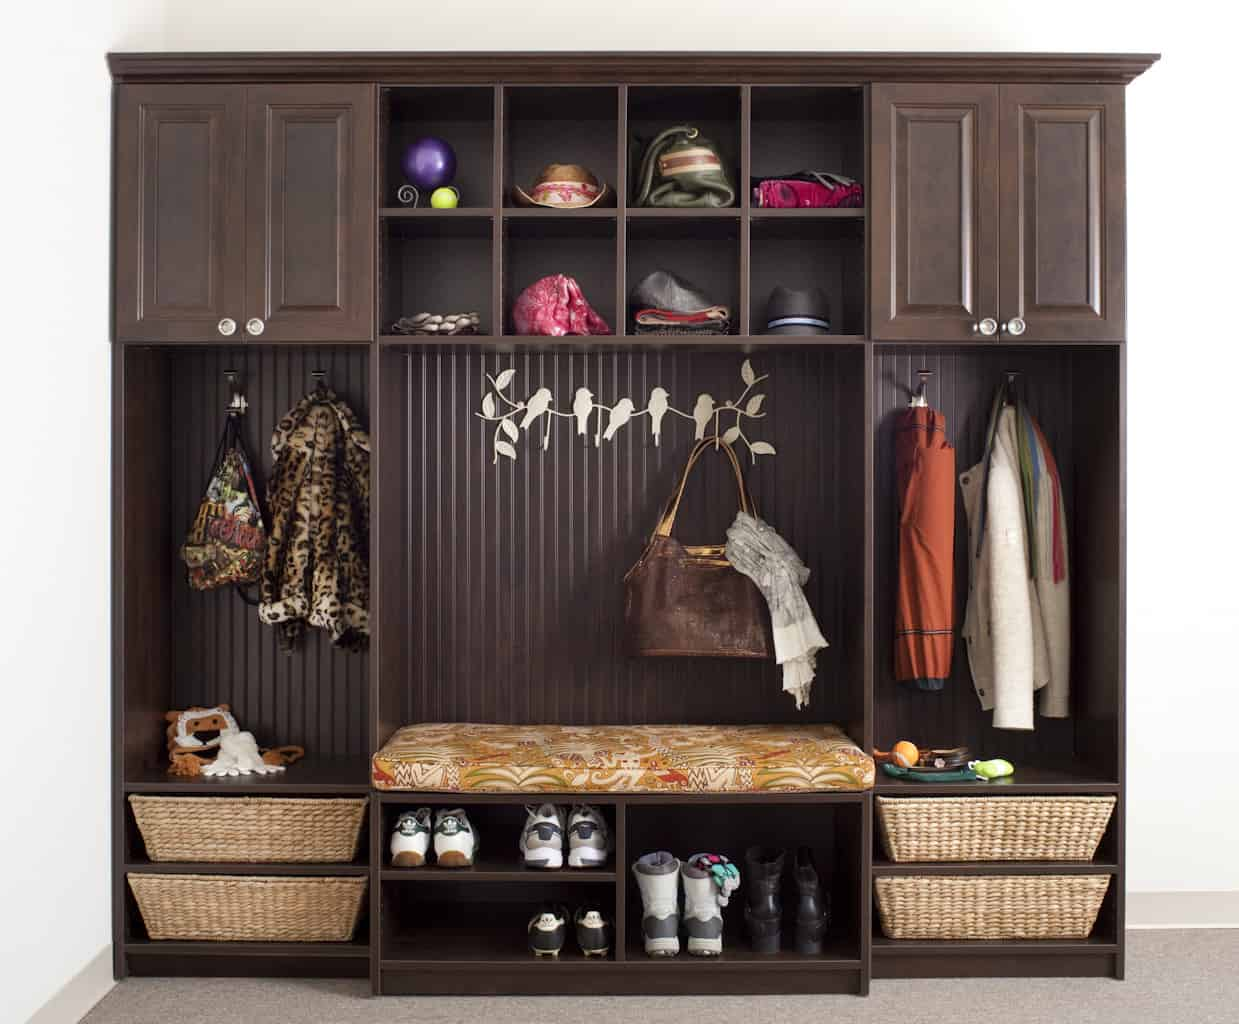 Custom-built mudroom with a small seating, shoe storage, wall hooks, open shelving, and upper cabinets.